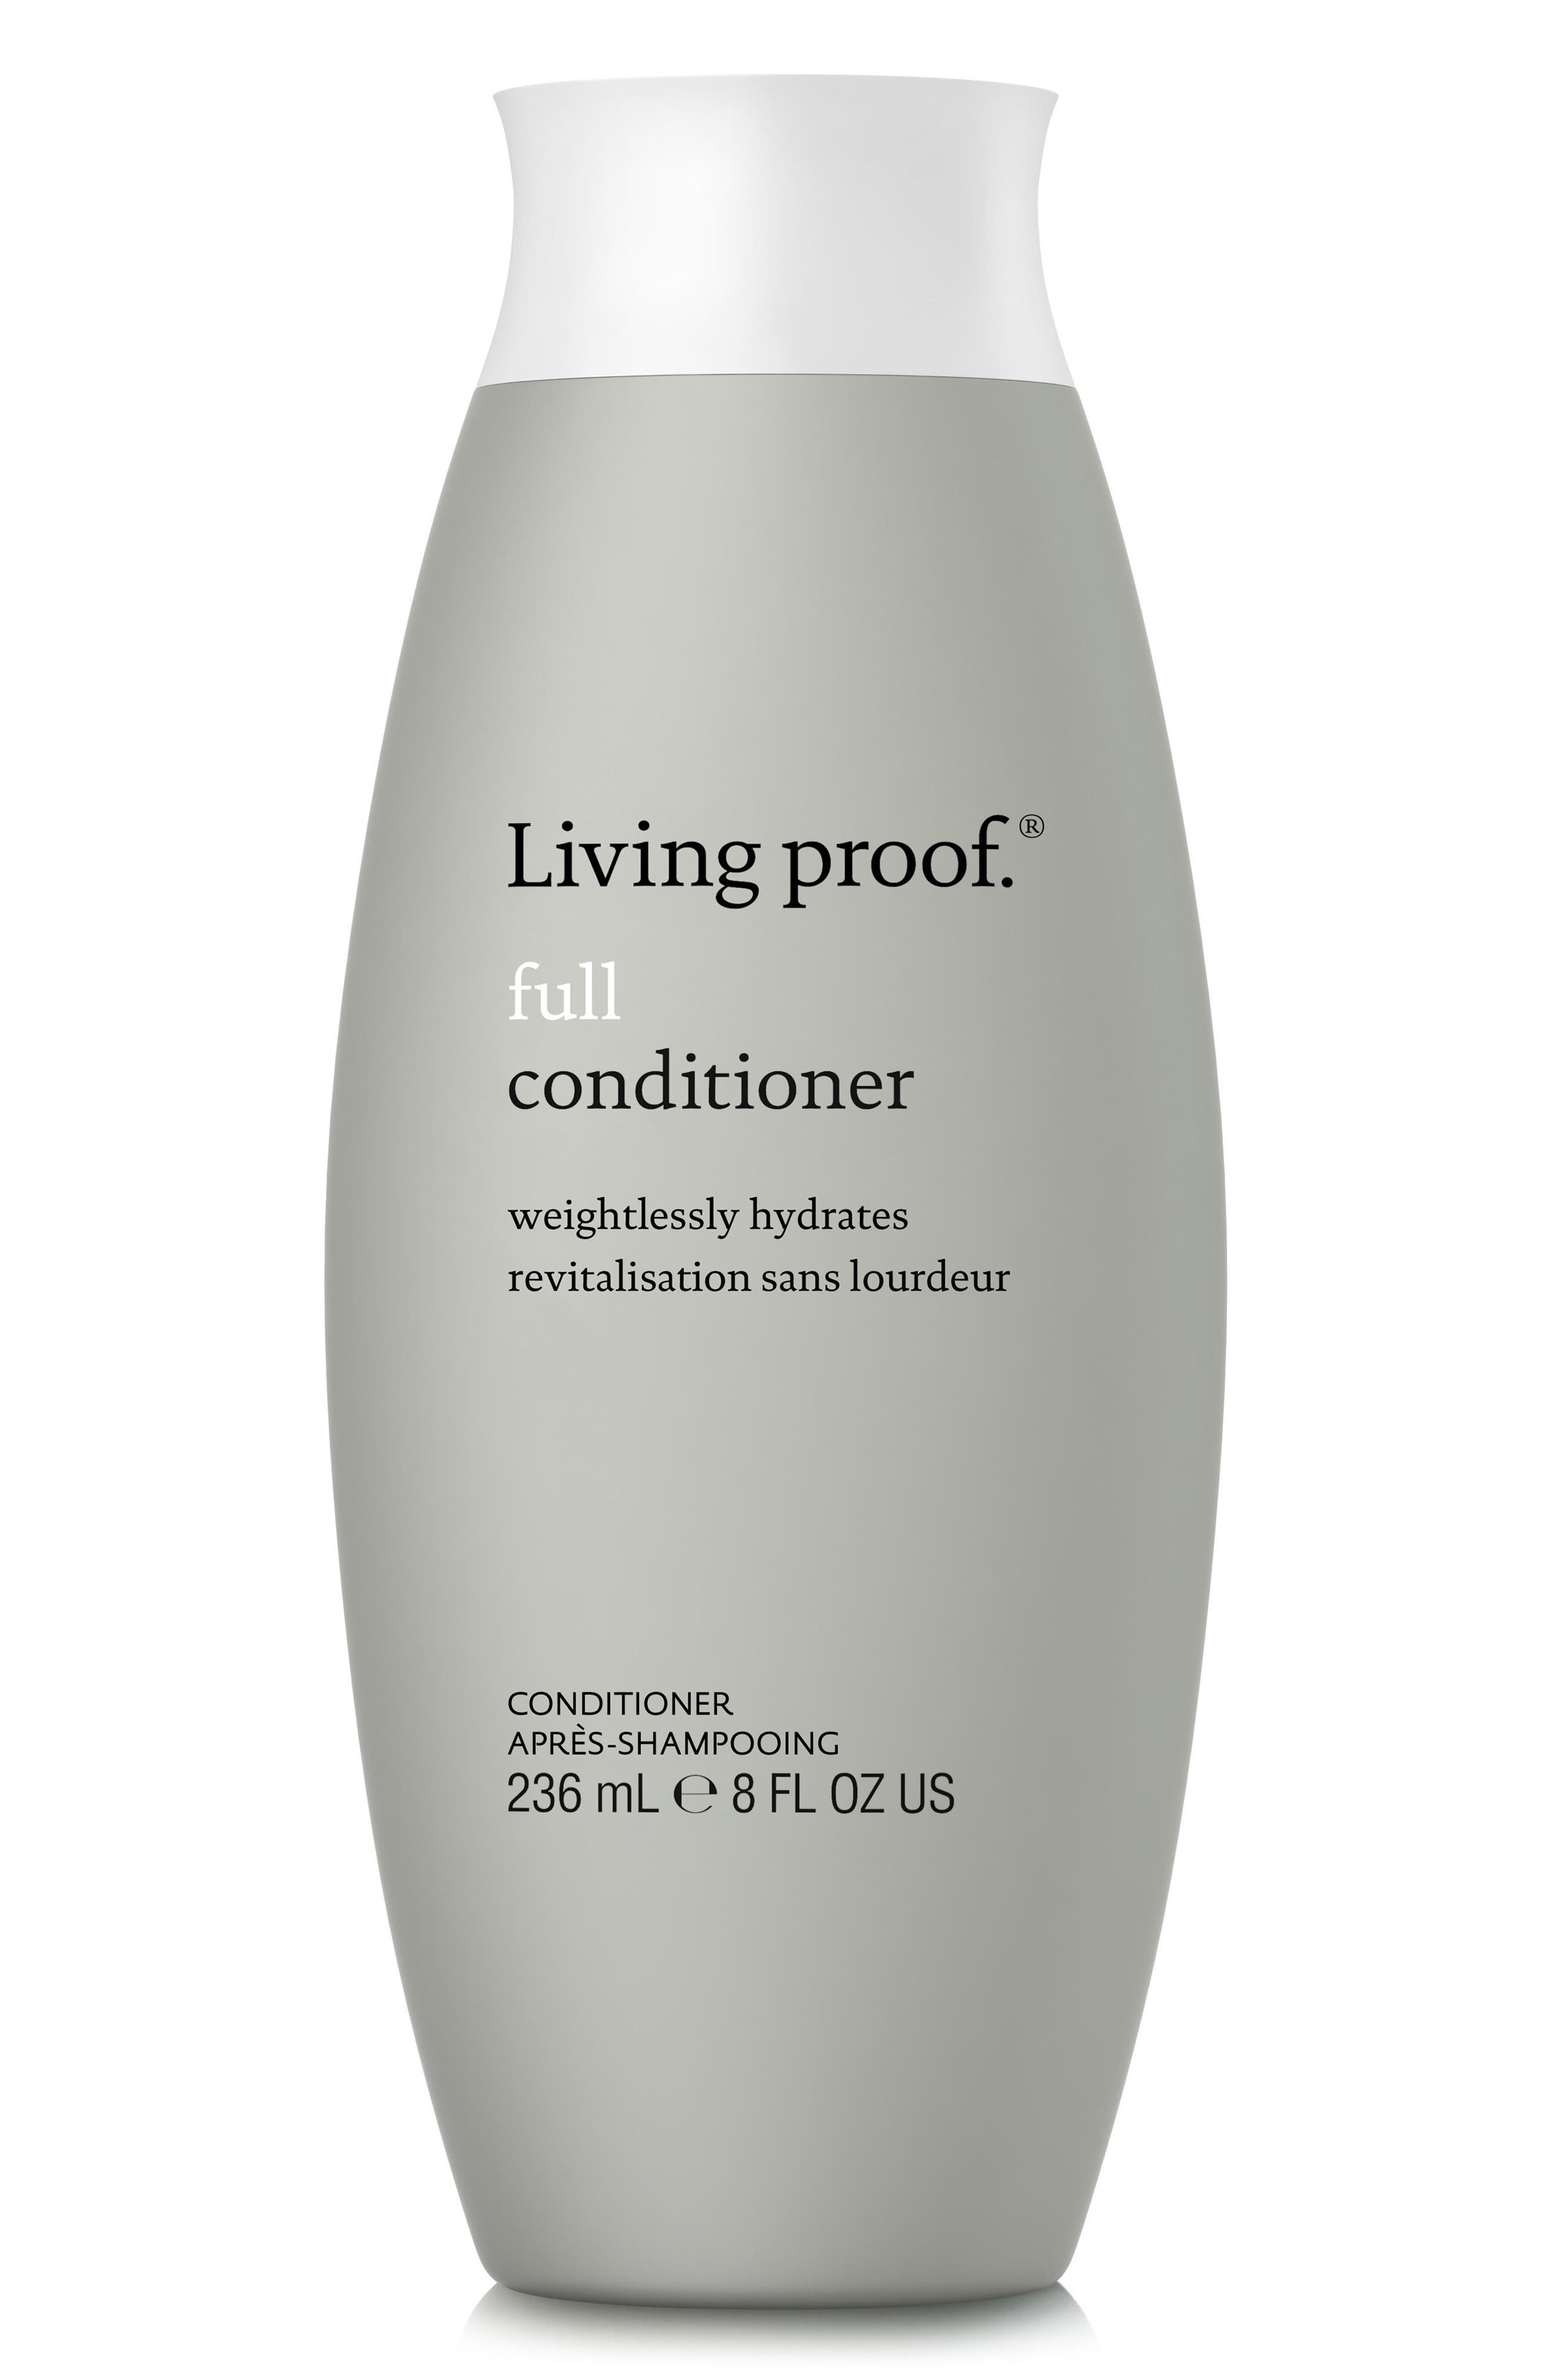 Living proof® Full Conditioner